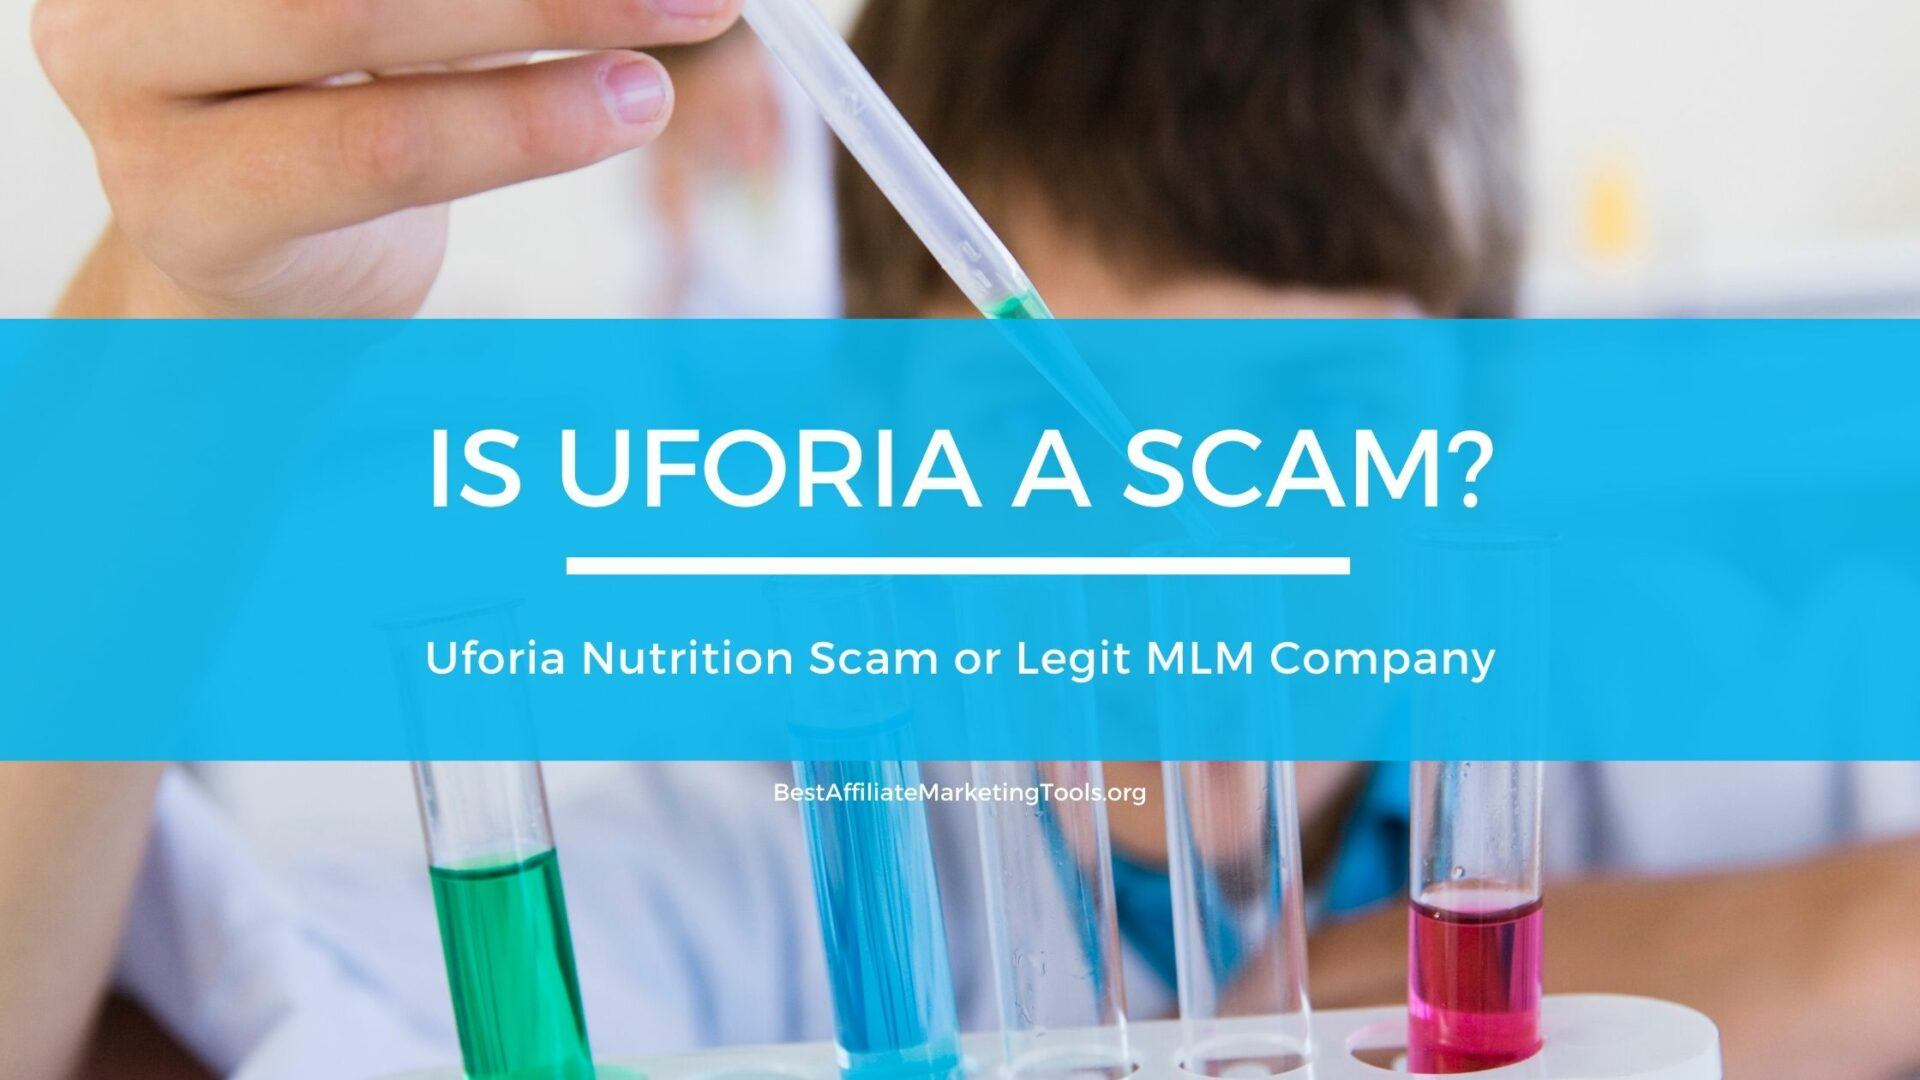 Is Uforia A Scam